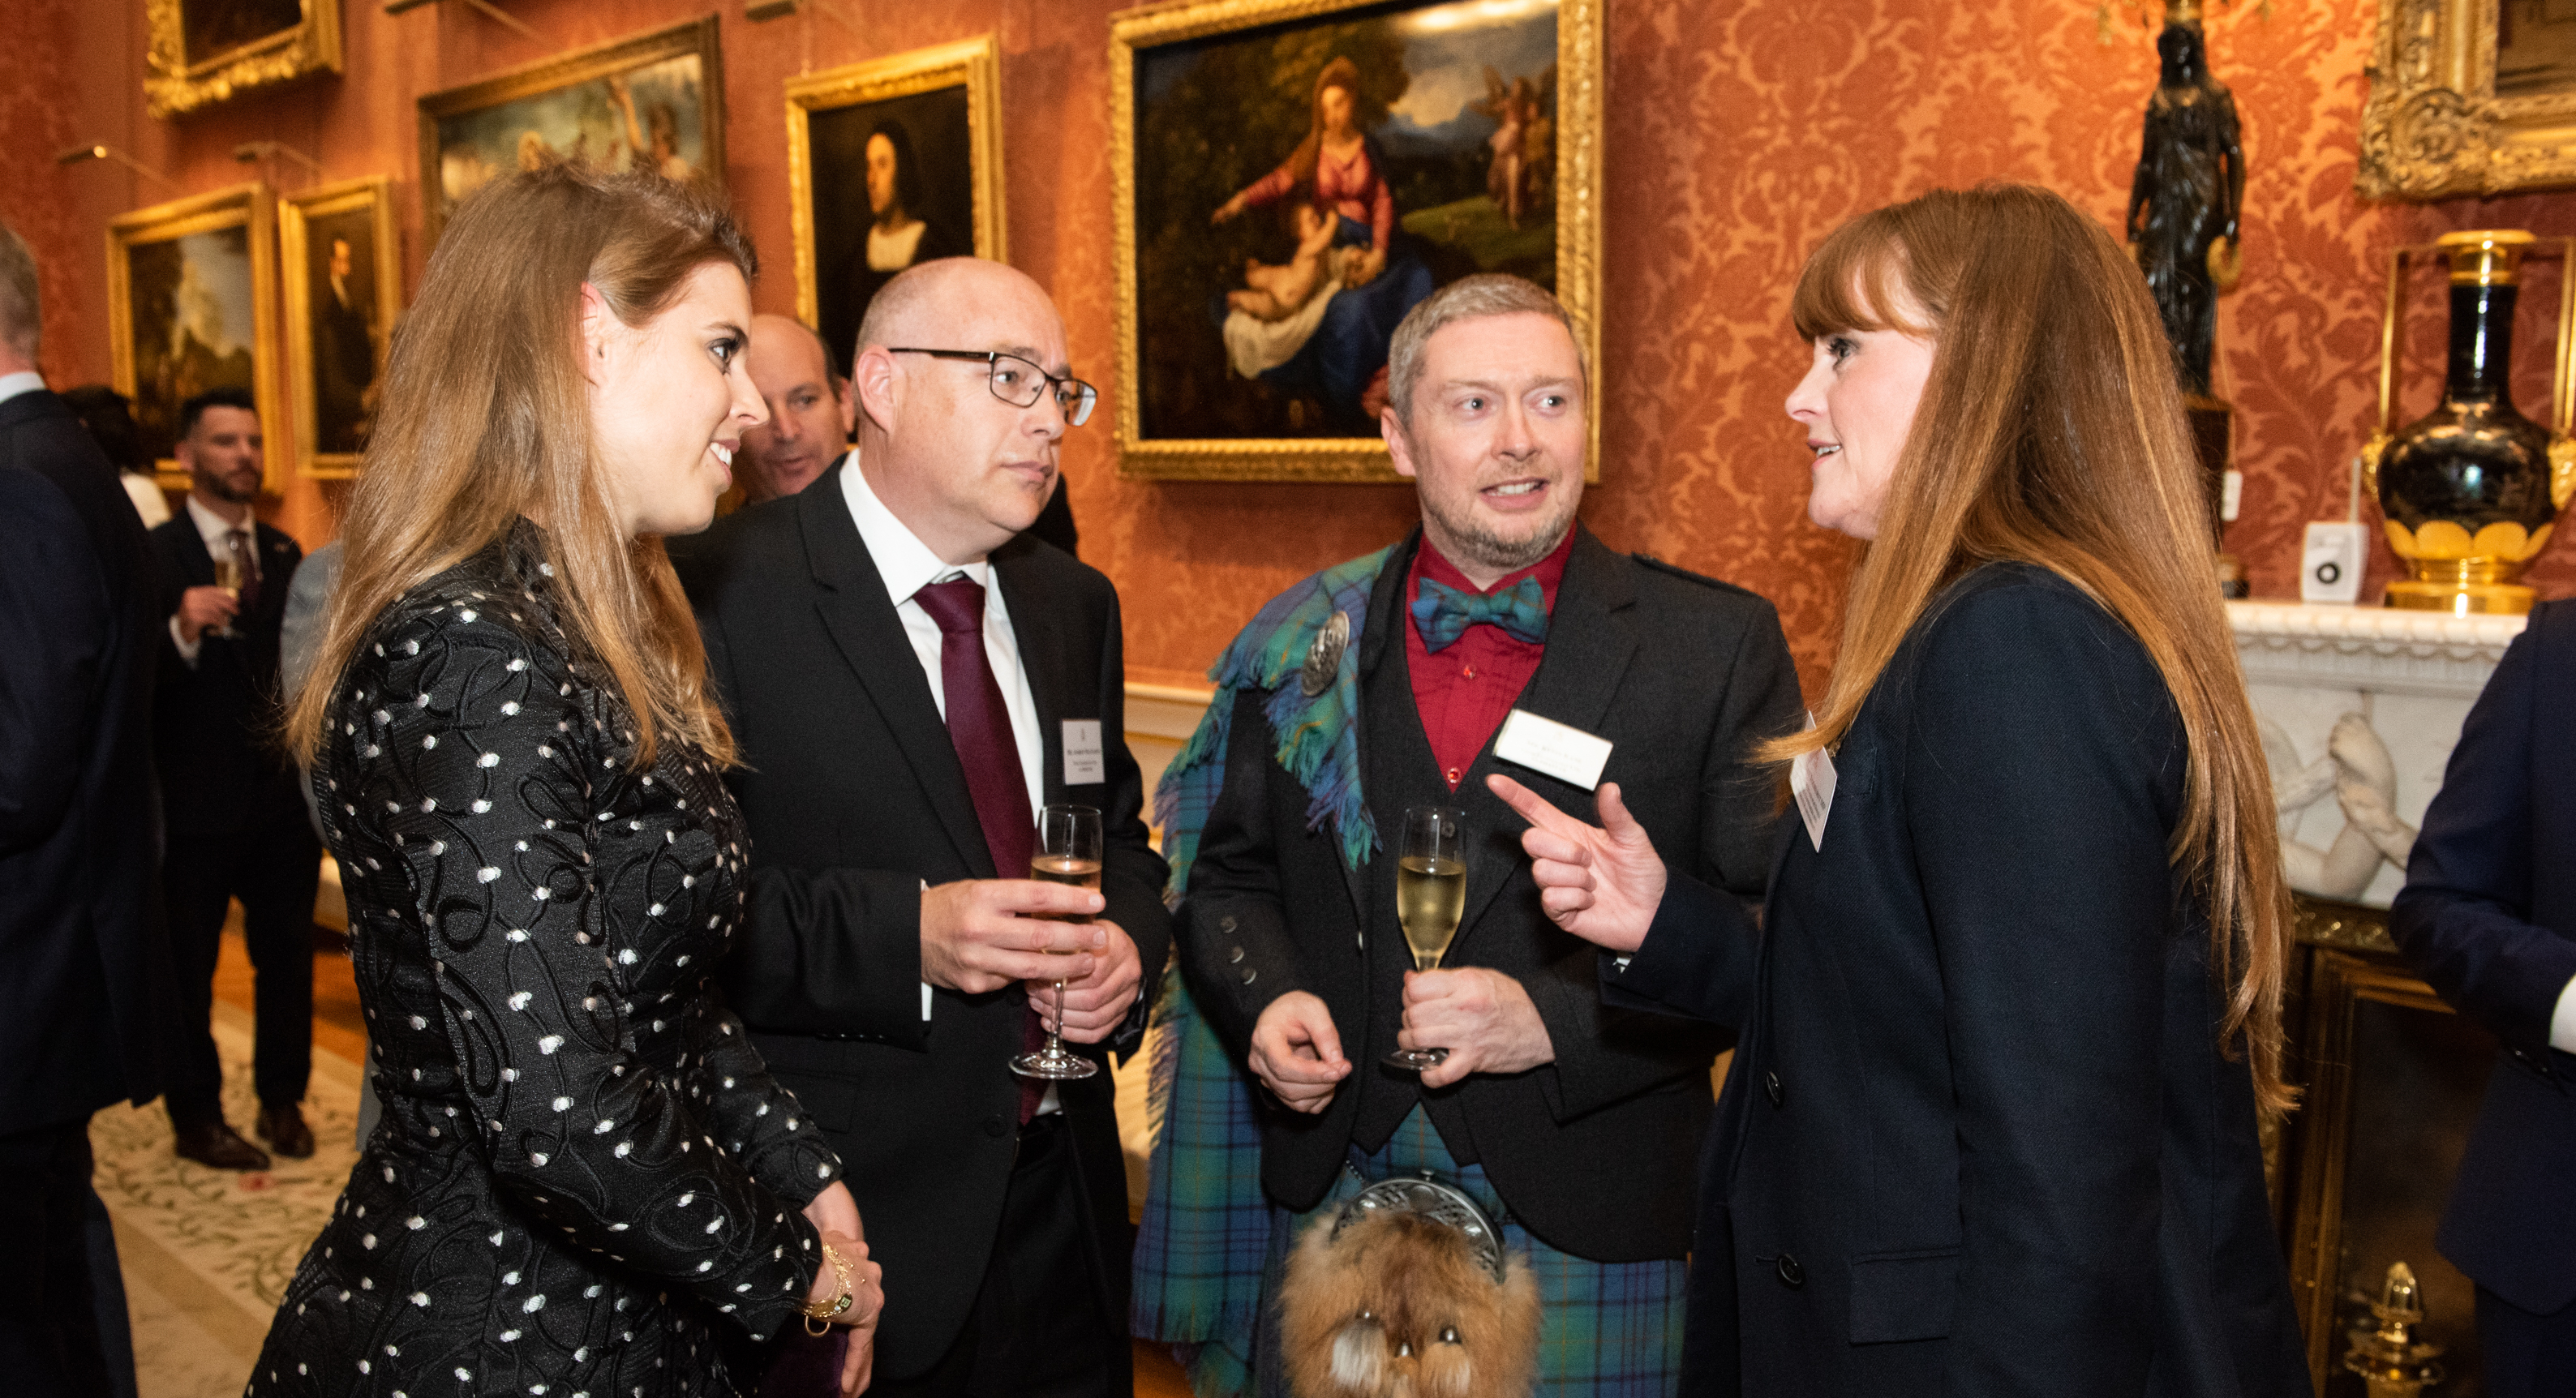 PHASTAR's Kevin Kane and Andrew MacGarvey speaking with Princess Beatrice at the award ceremony